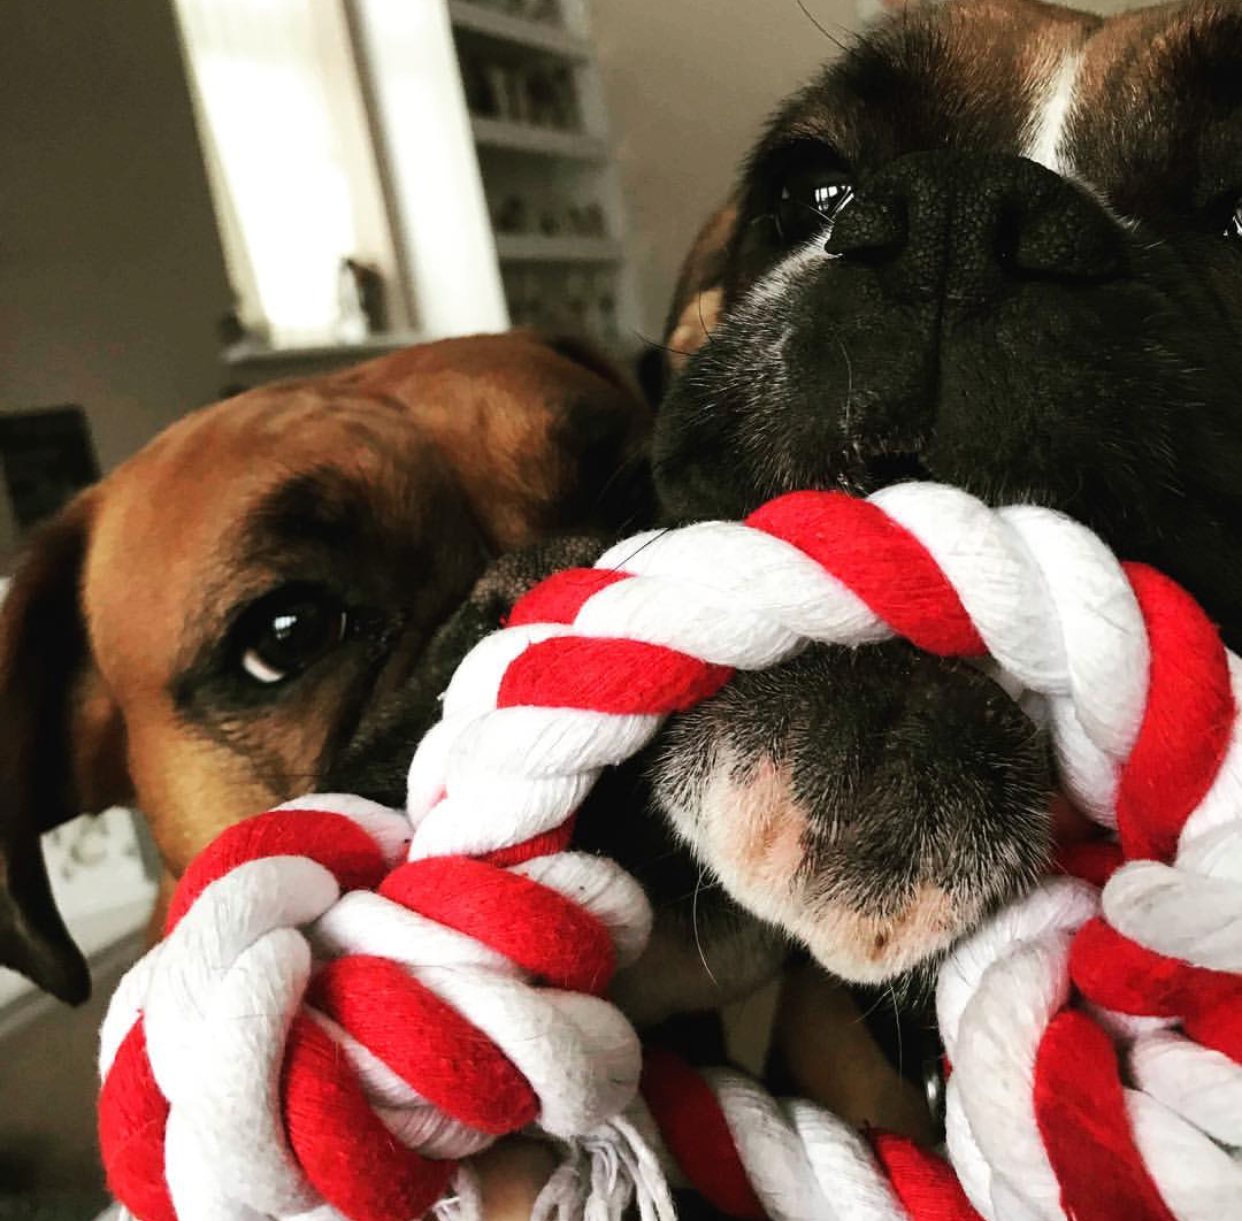 boxer dogs playing with a red and white rope toy